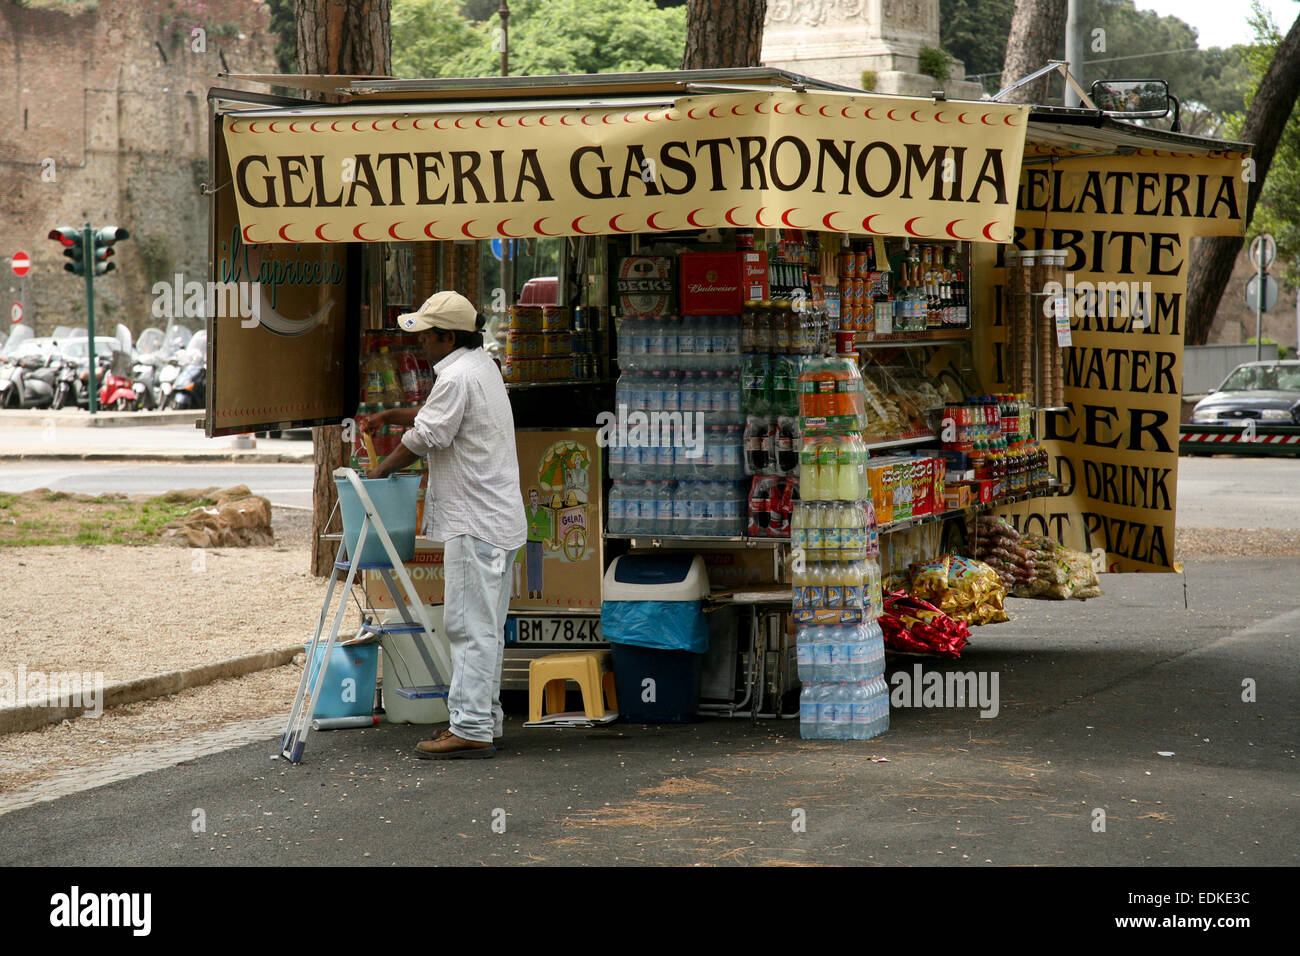 Man cleaning snack stand in a park in Rome,Italy - Stock Image